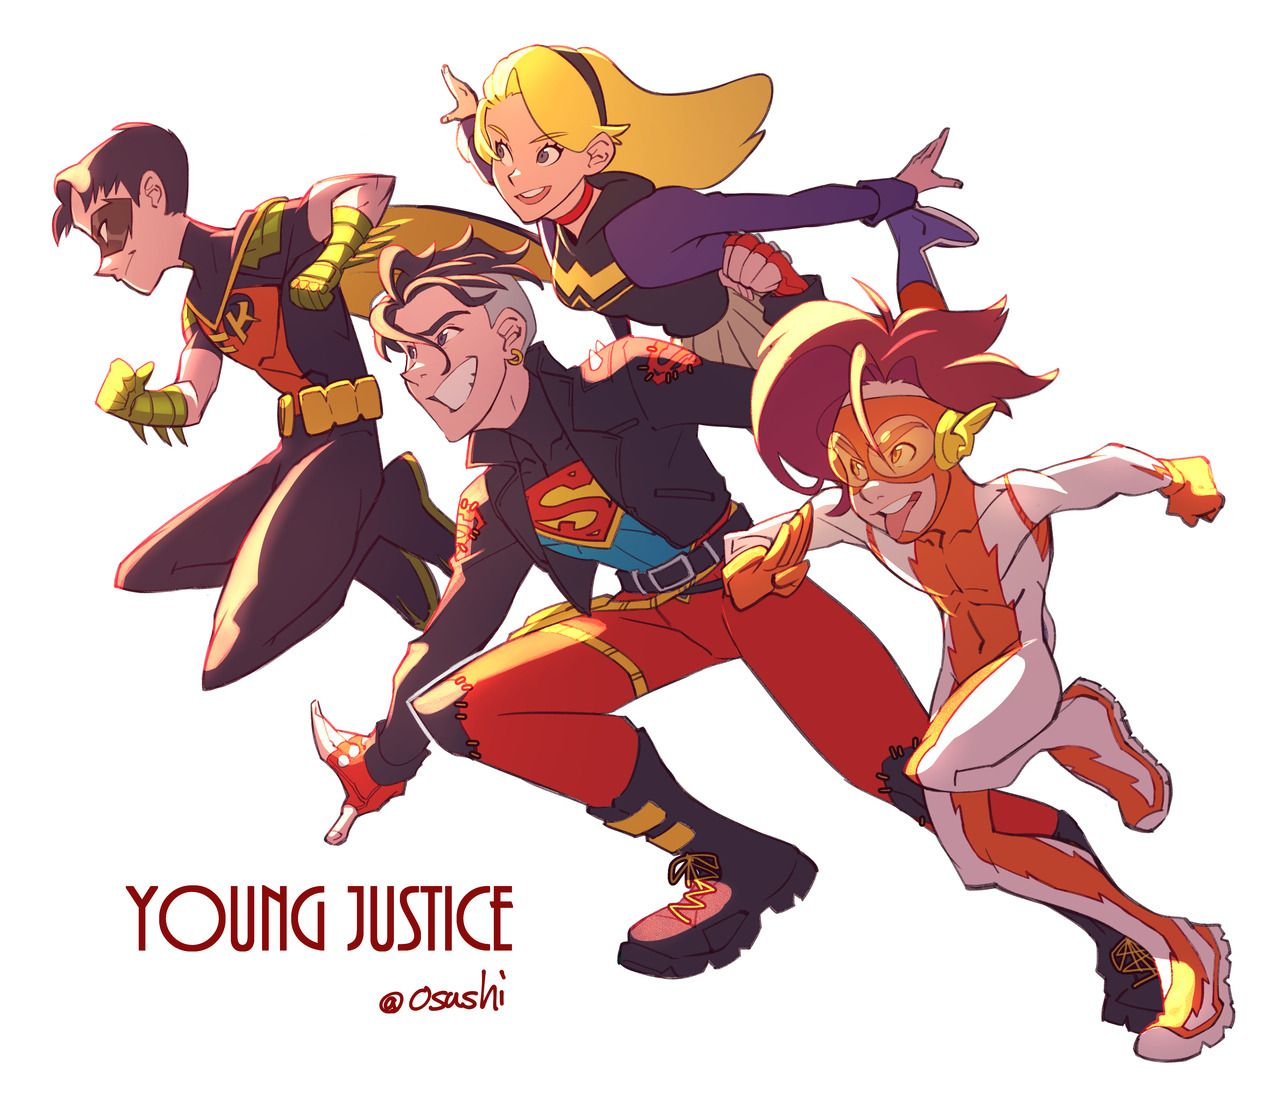 Supergirl and Superboy - Young Justice OCS!!! Fan Art